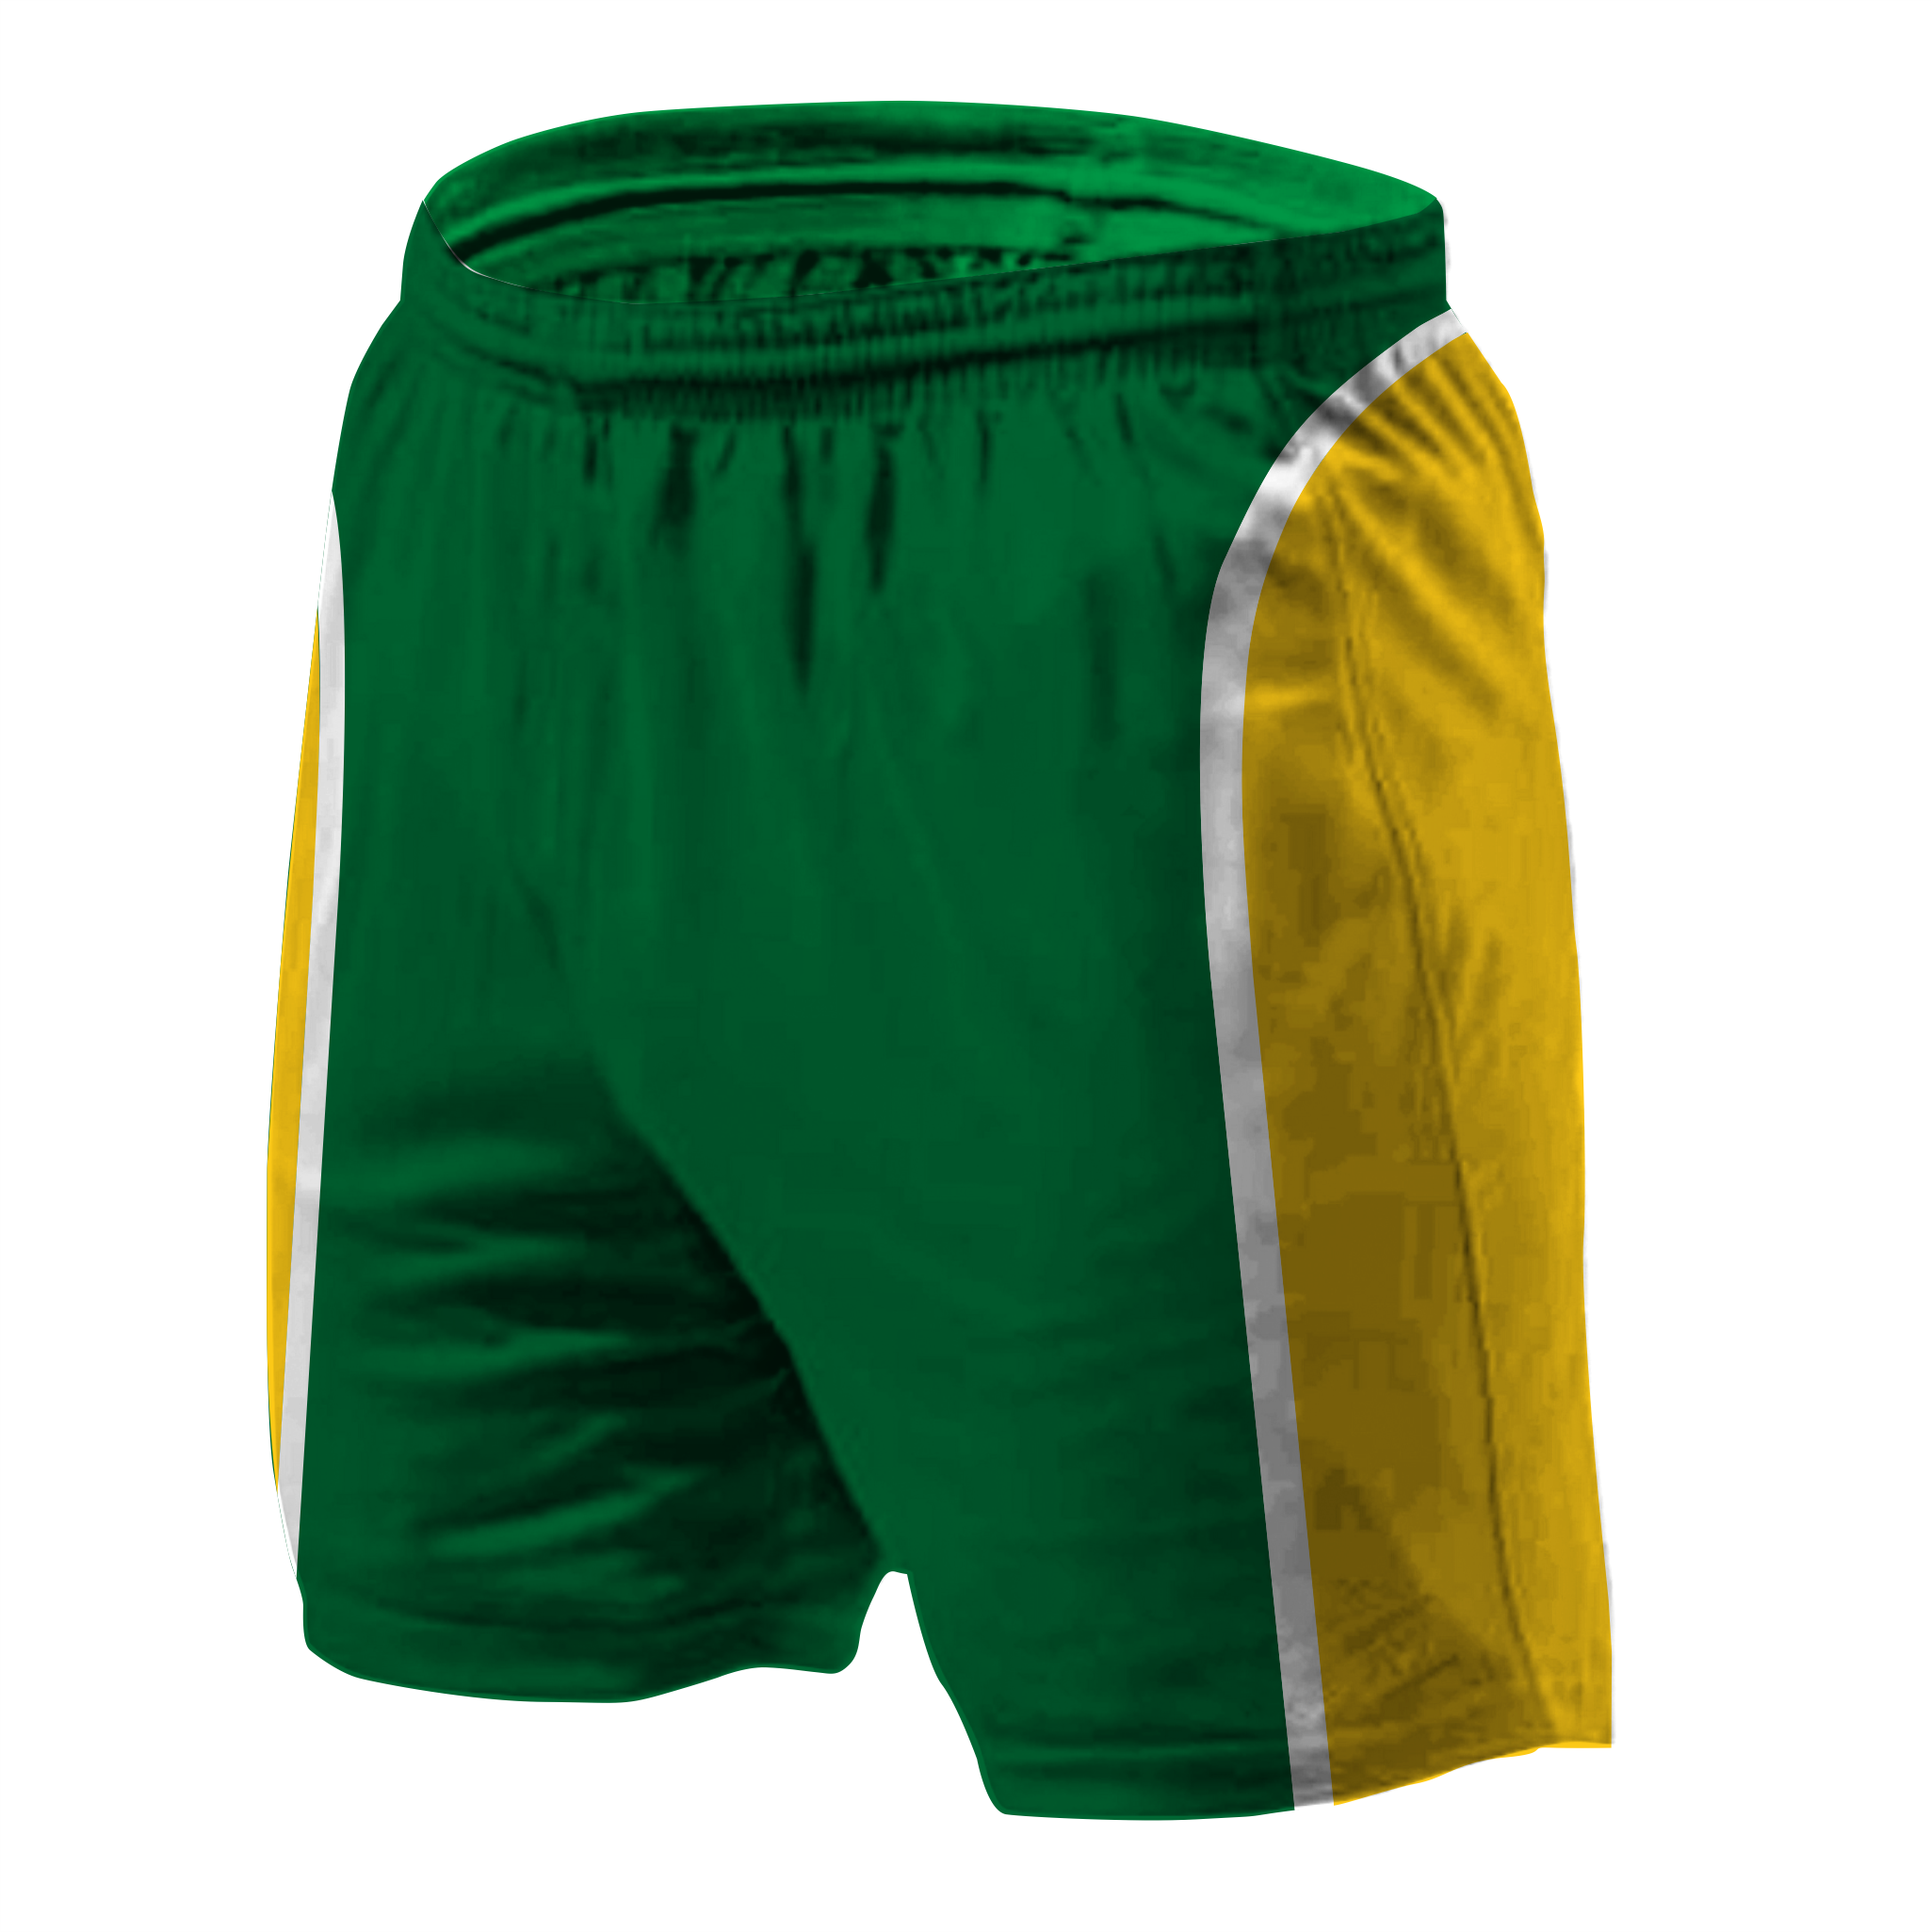 Panelled - Zuco football shorts - Bolt